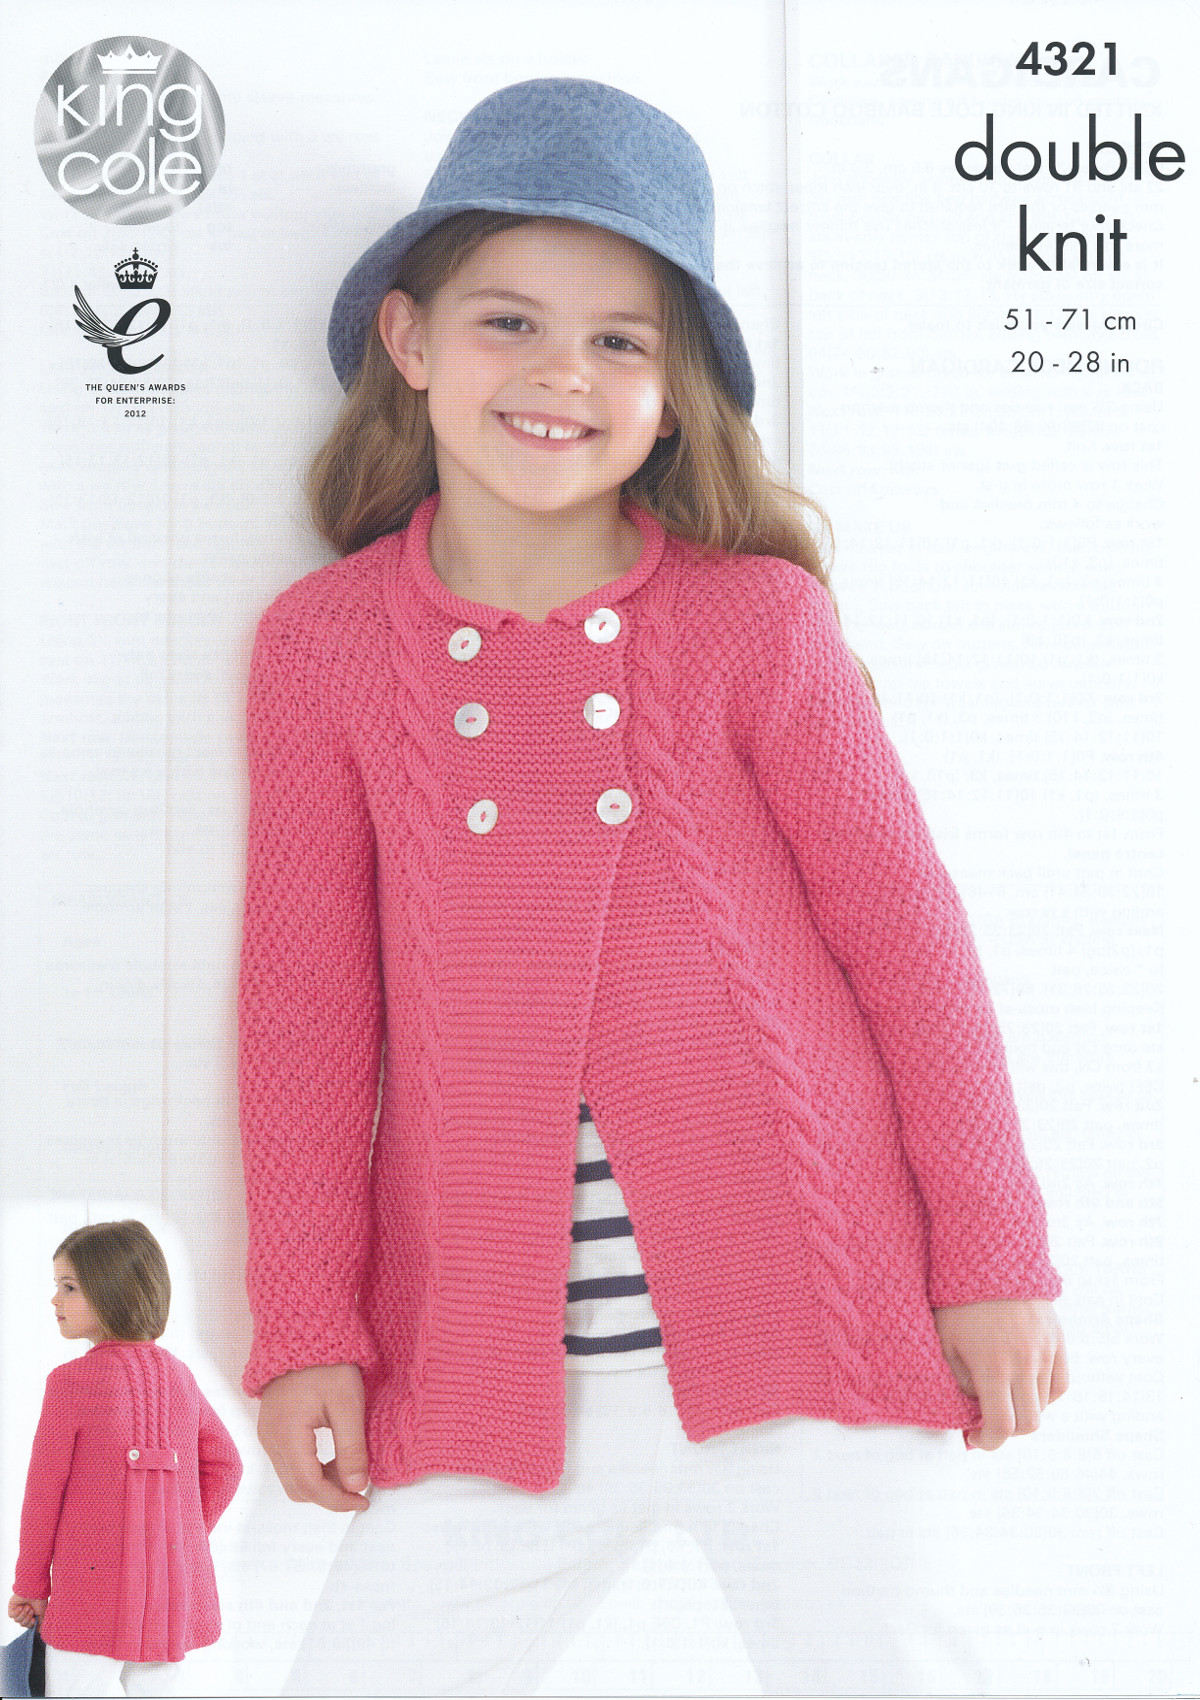 King Cole Double Knitting DK Pattern Girls Round Neck Collared ...